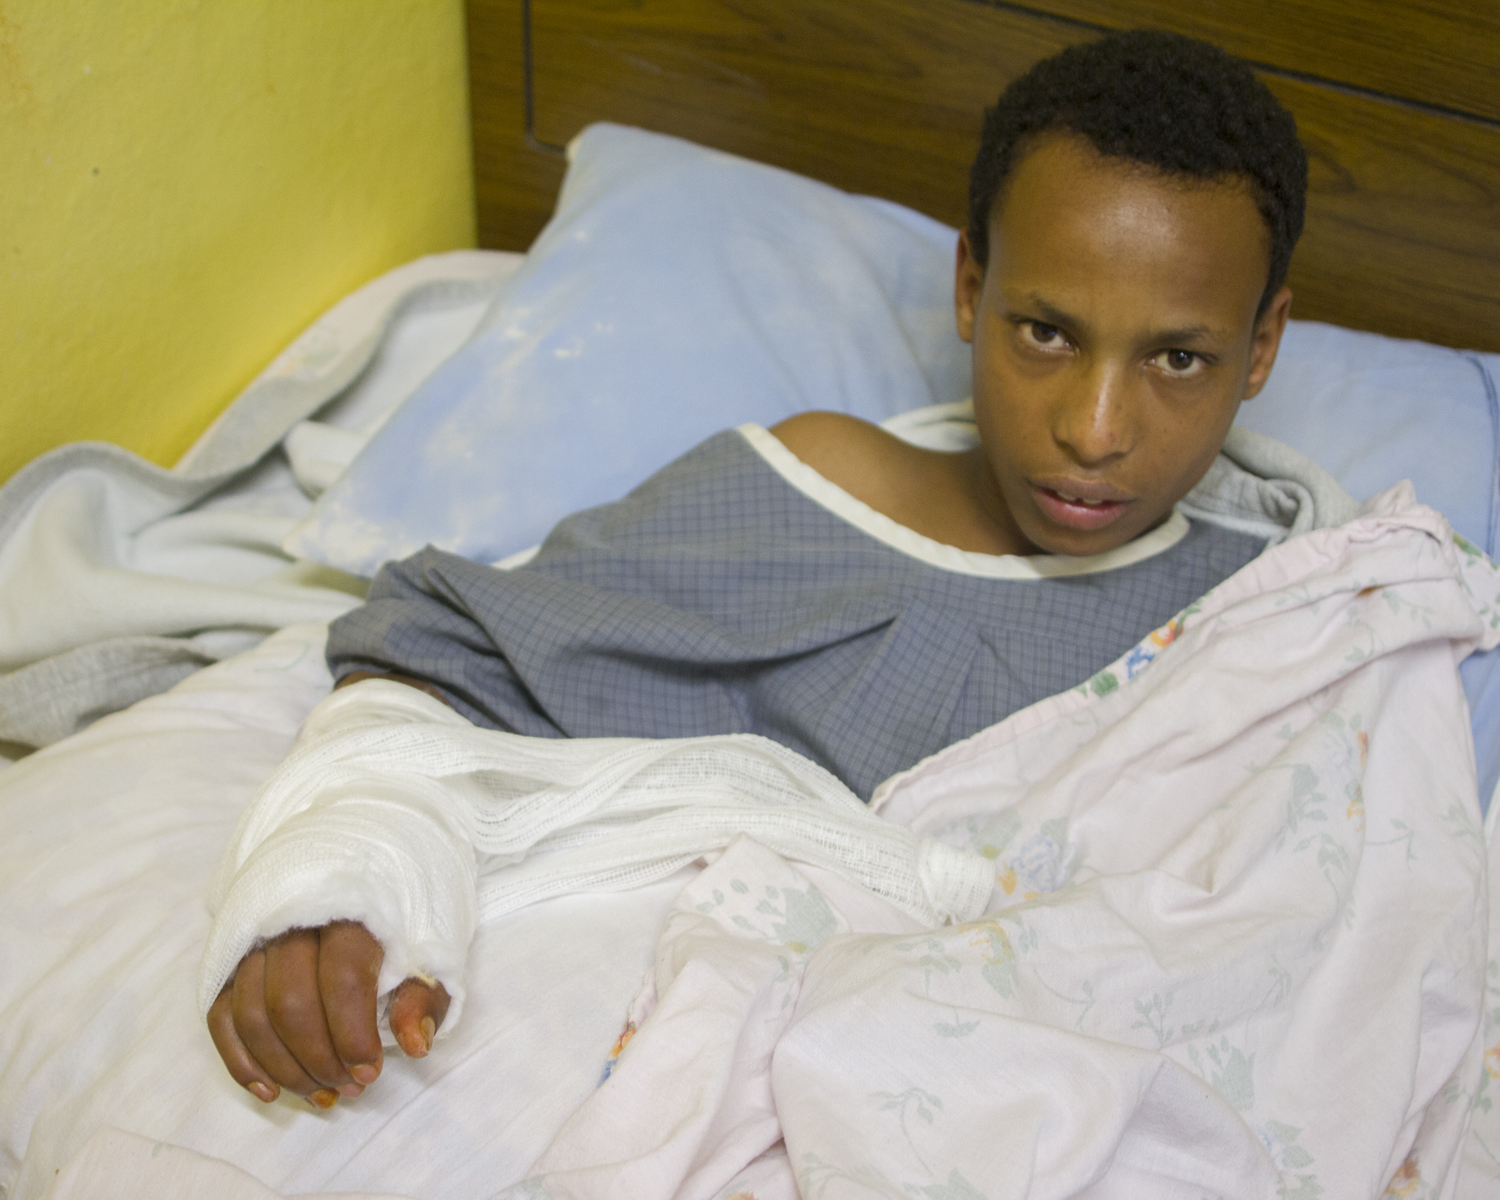 Photo of Andualem after treatment